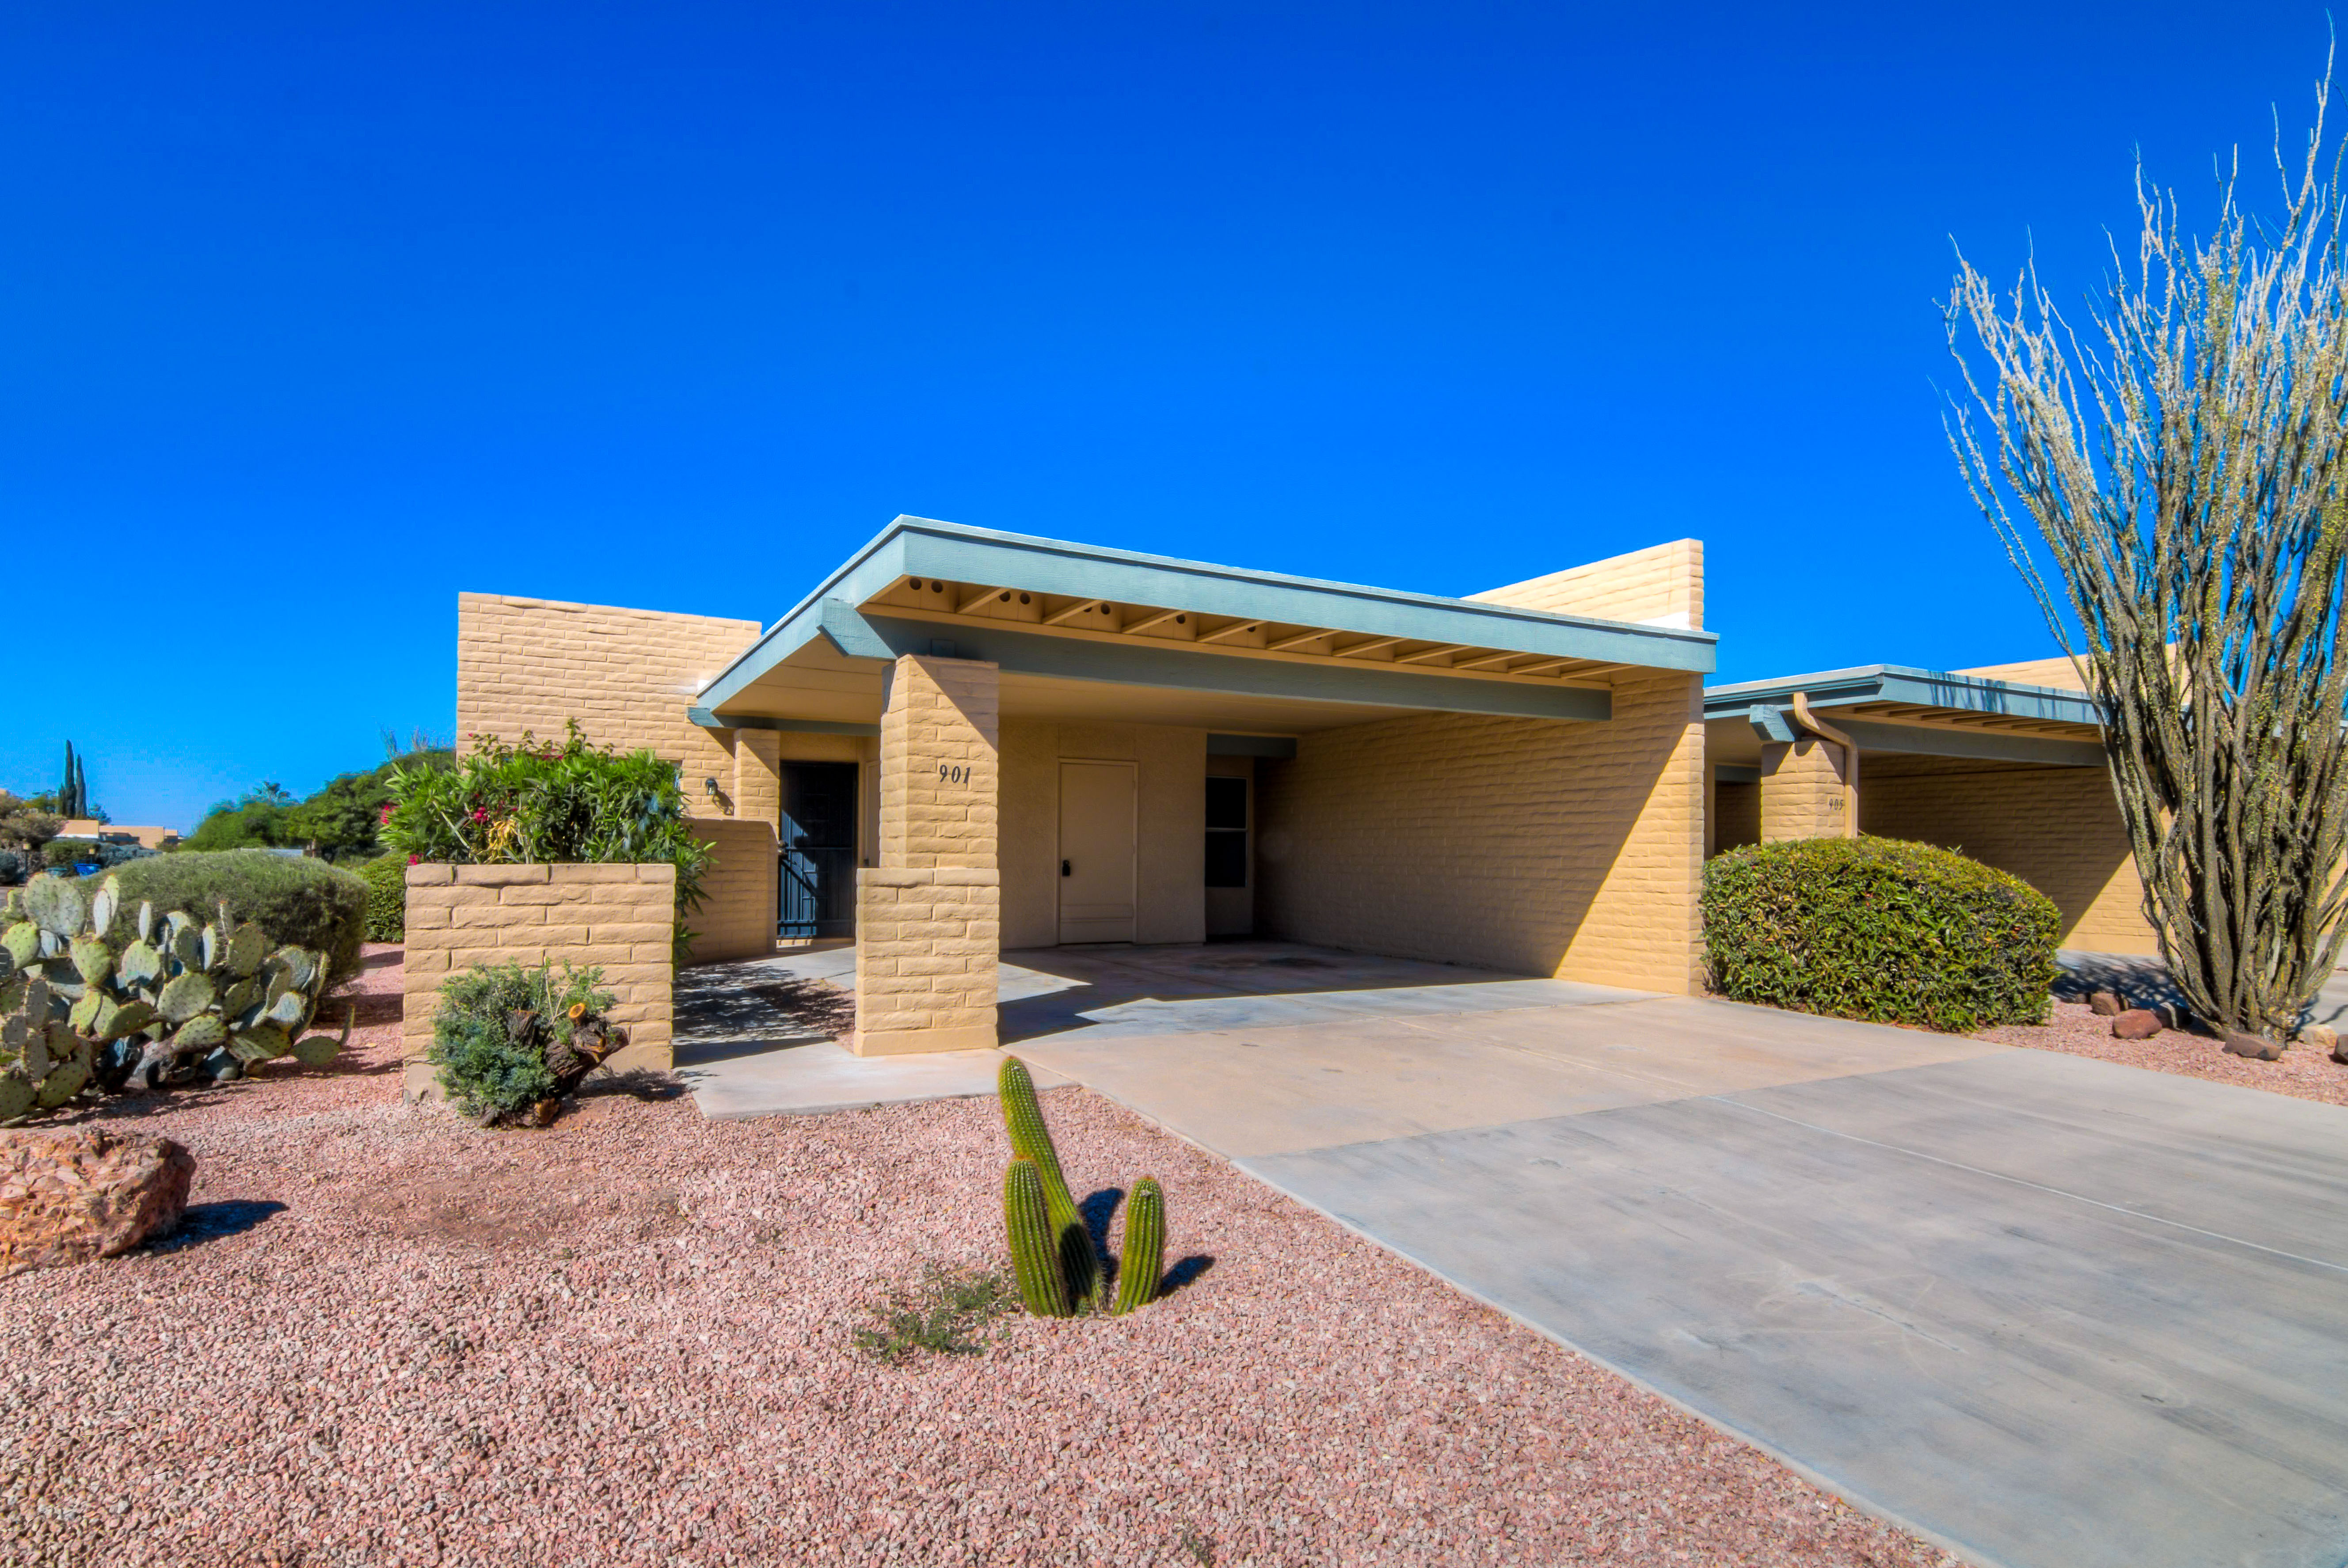 Casa Real Townhomes For Sale In Tucson Arizona Tucson Home Search